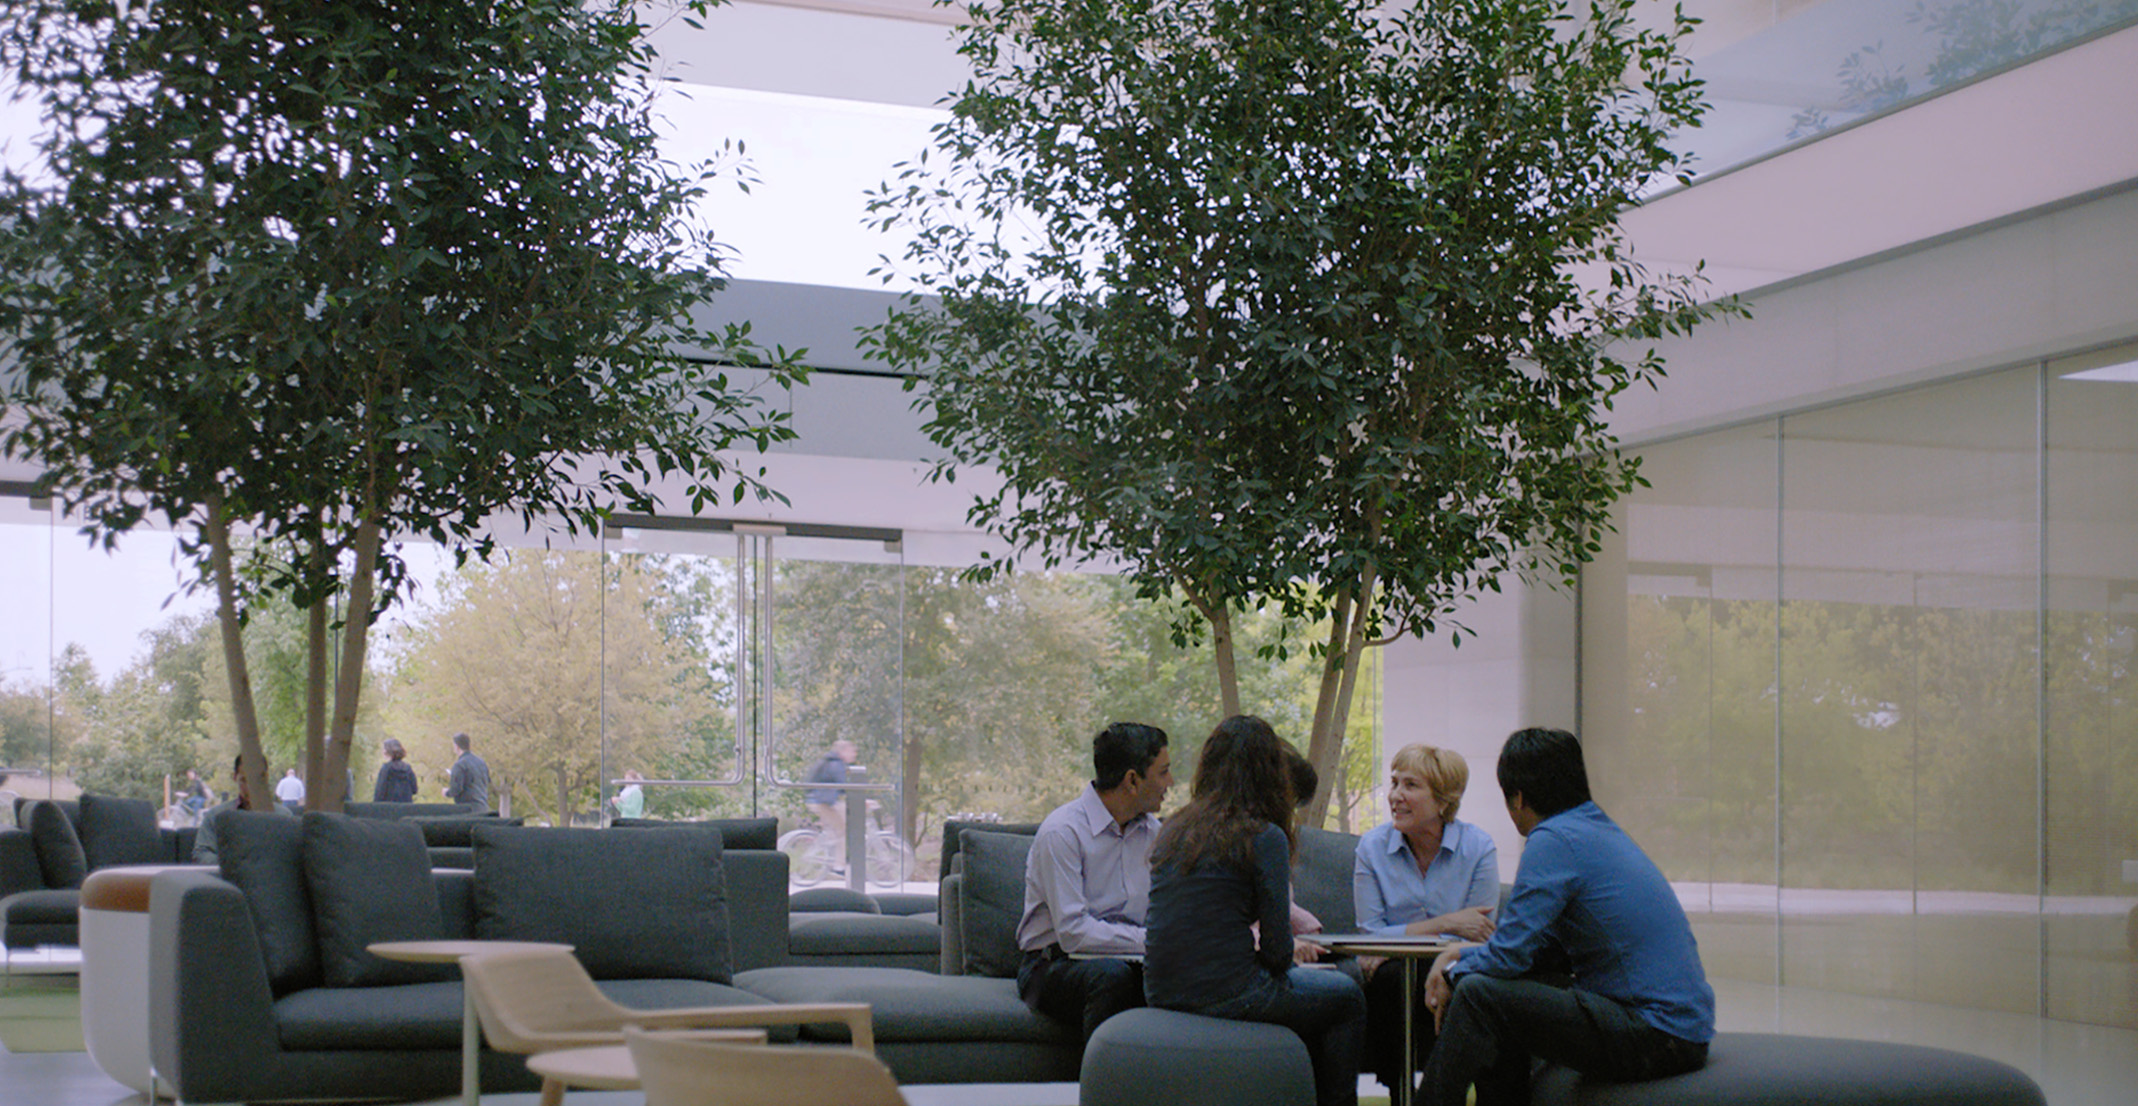 Giulia, who leads a natural language processing team, sits at a table along with other Apple employees.